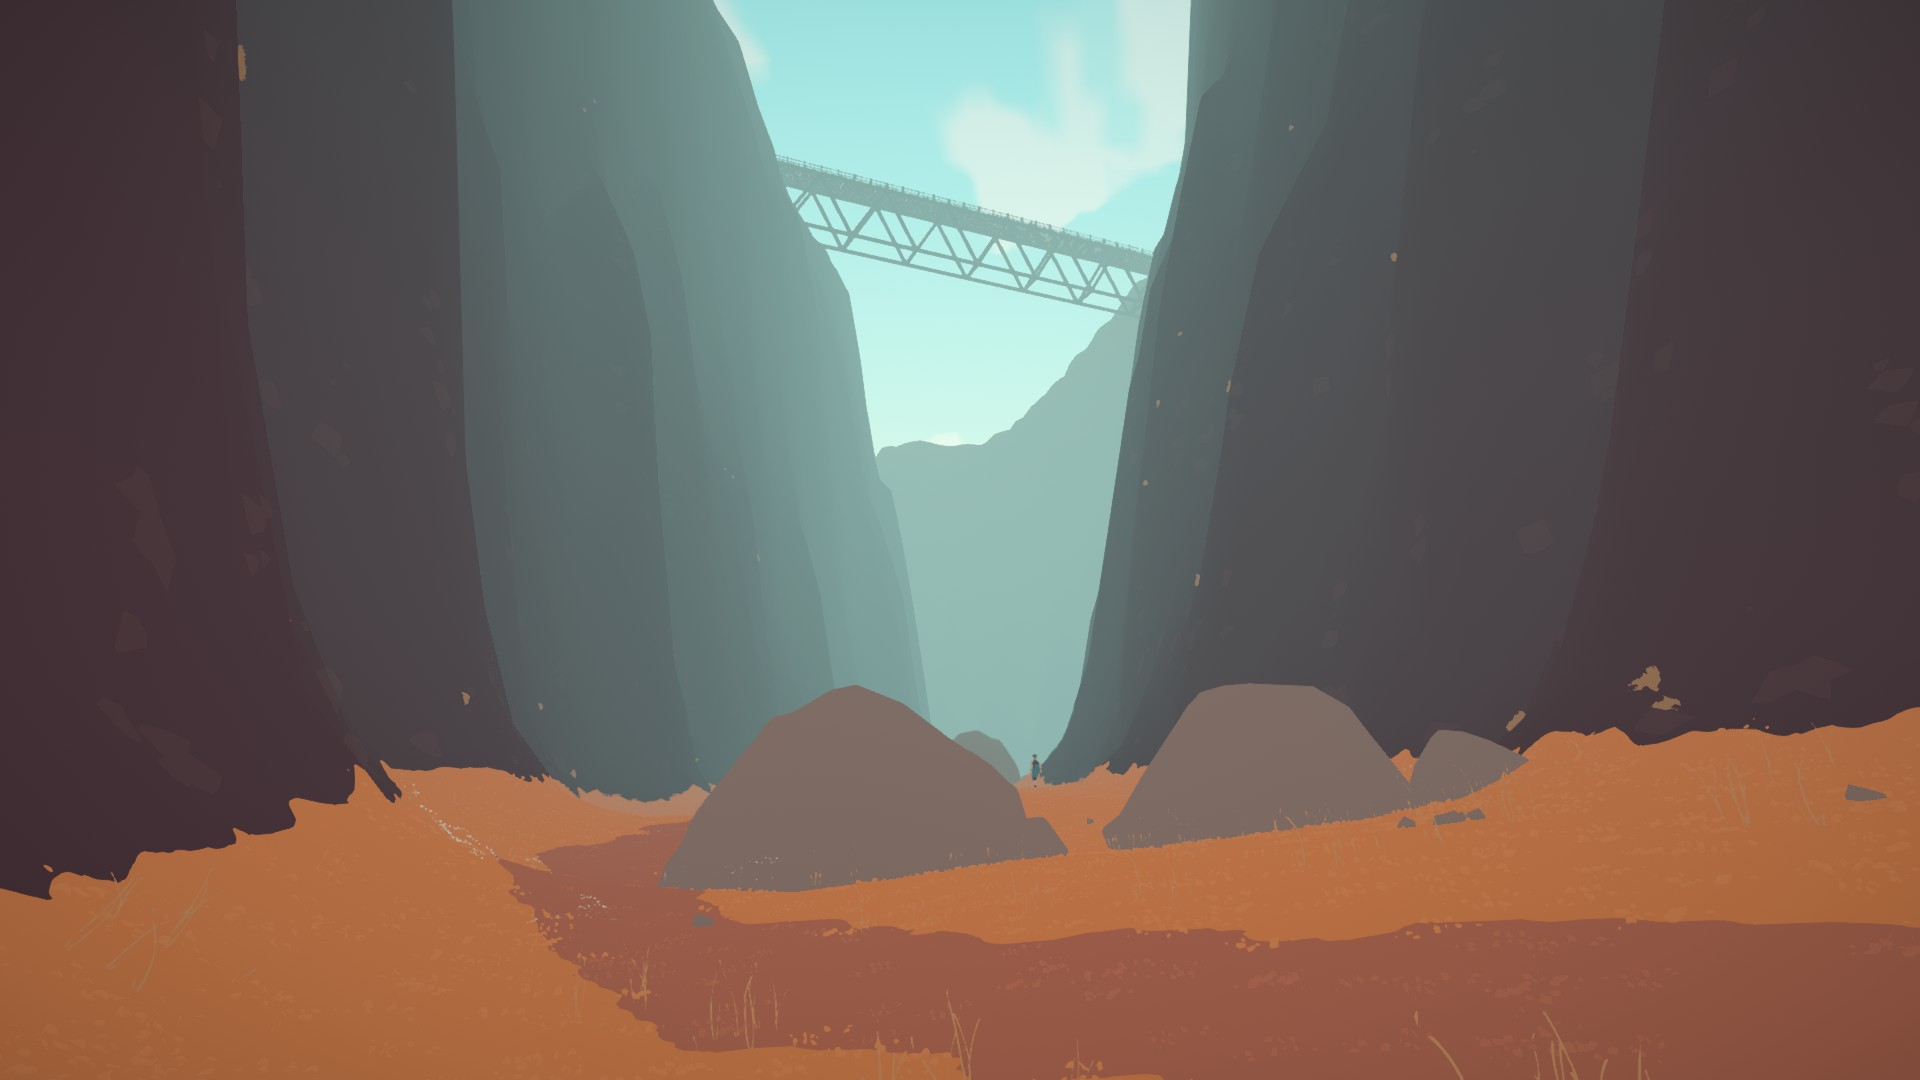 A ground-level view of a very tall canyon. A path winds through the middle, and a bridge overhead. Two large boulders in the middle distance, between which walks an unknown human figure.